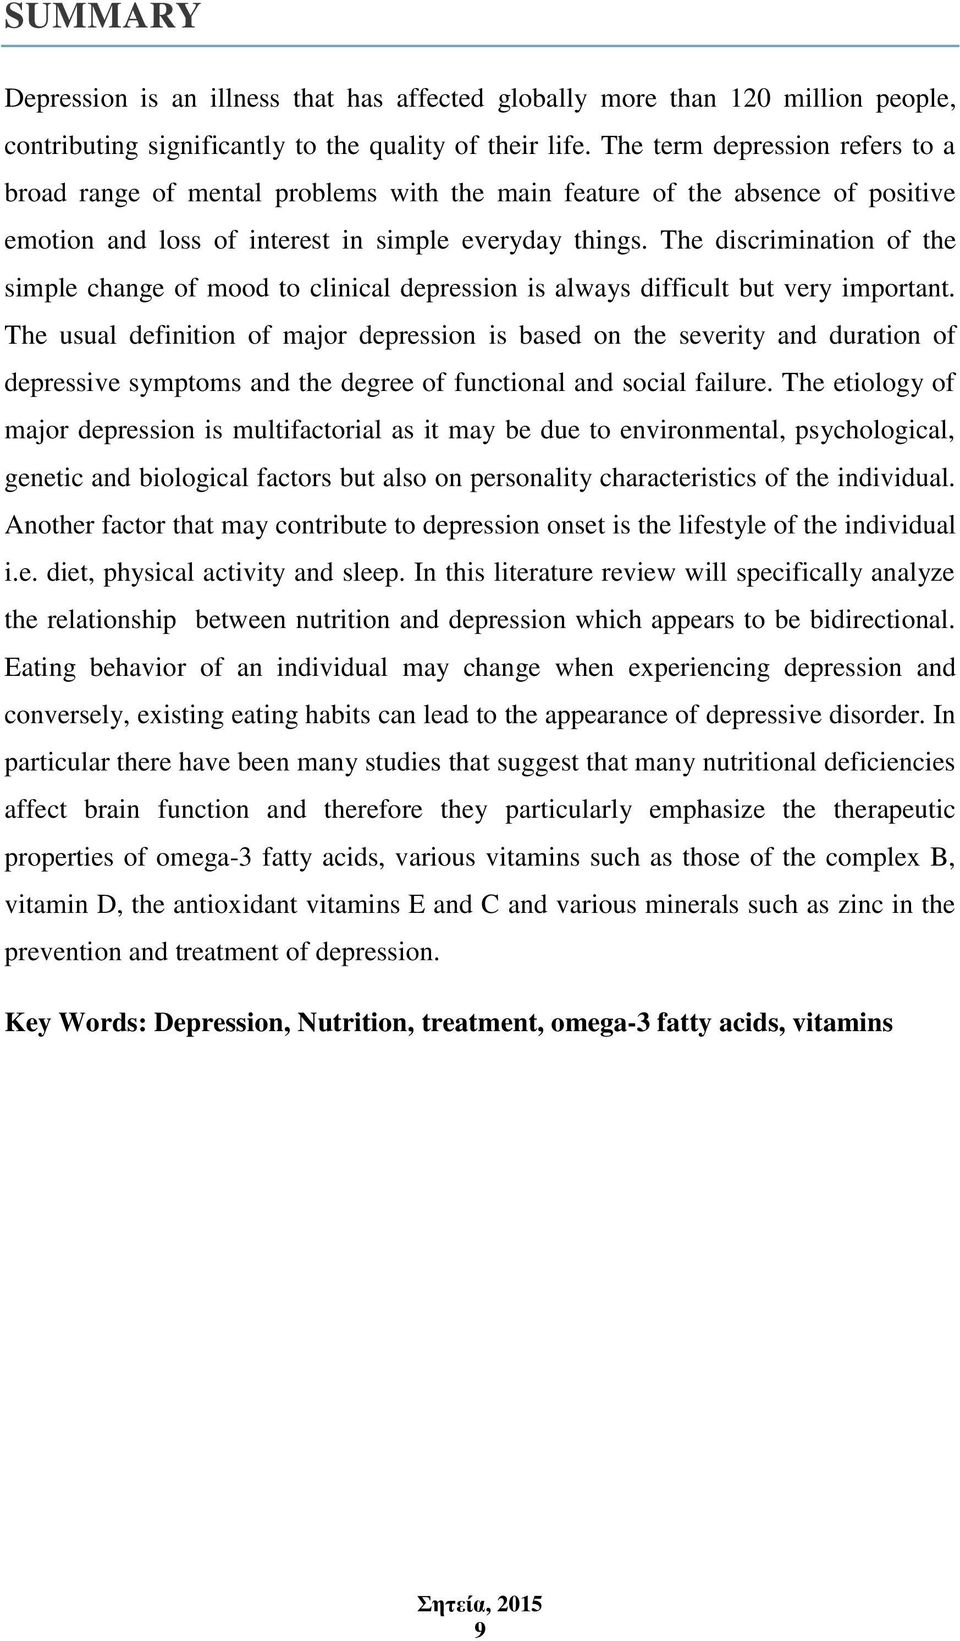 The discrimination of the simple change of mood to clinical depression is always difficult but very important.